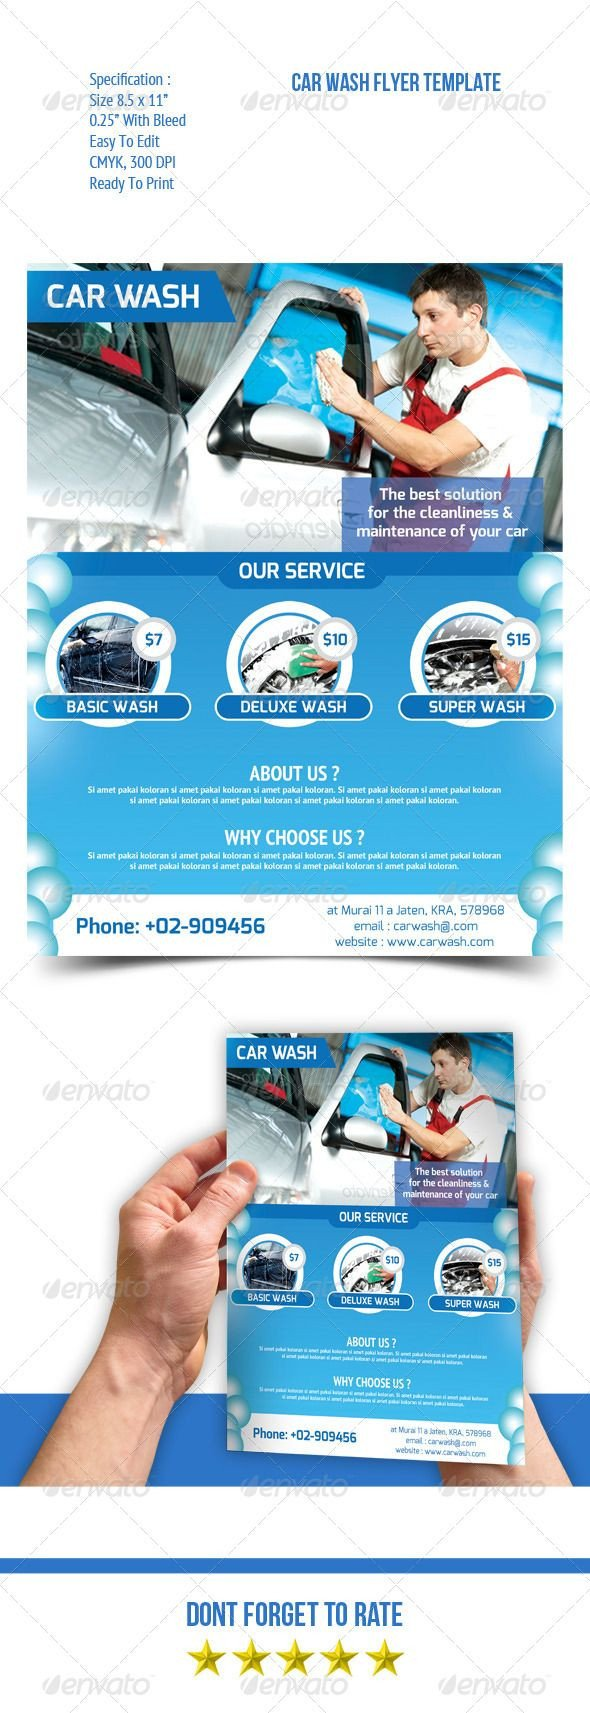 Car Wash Flyer Template Free Car Wash Flyer